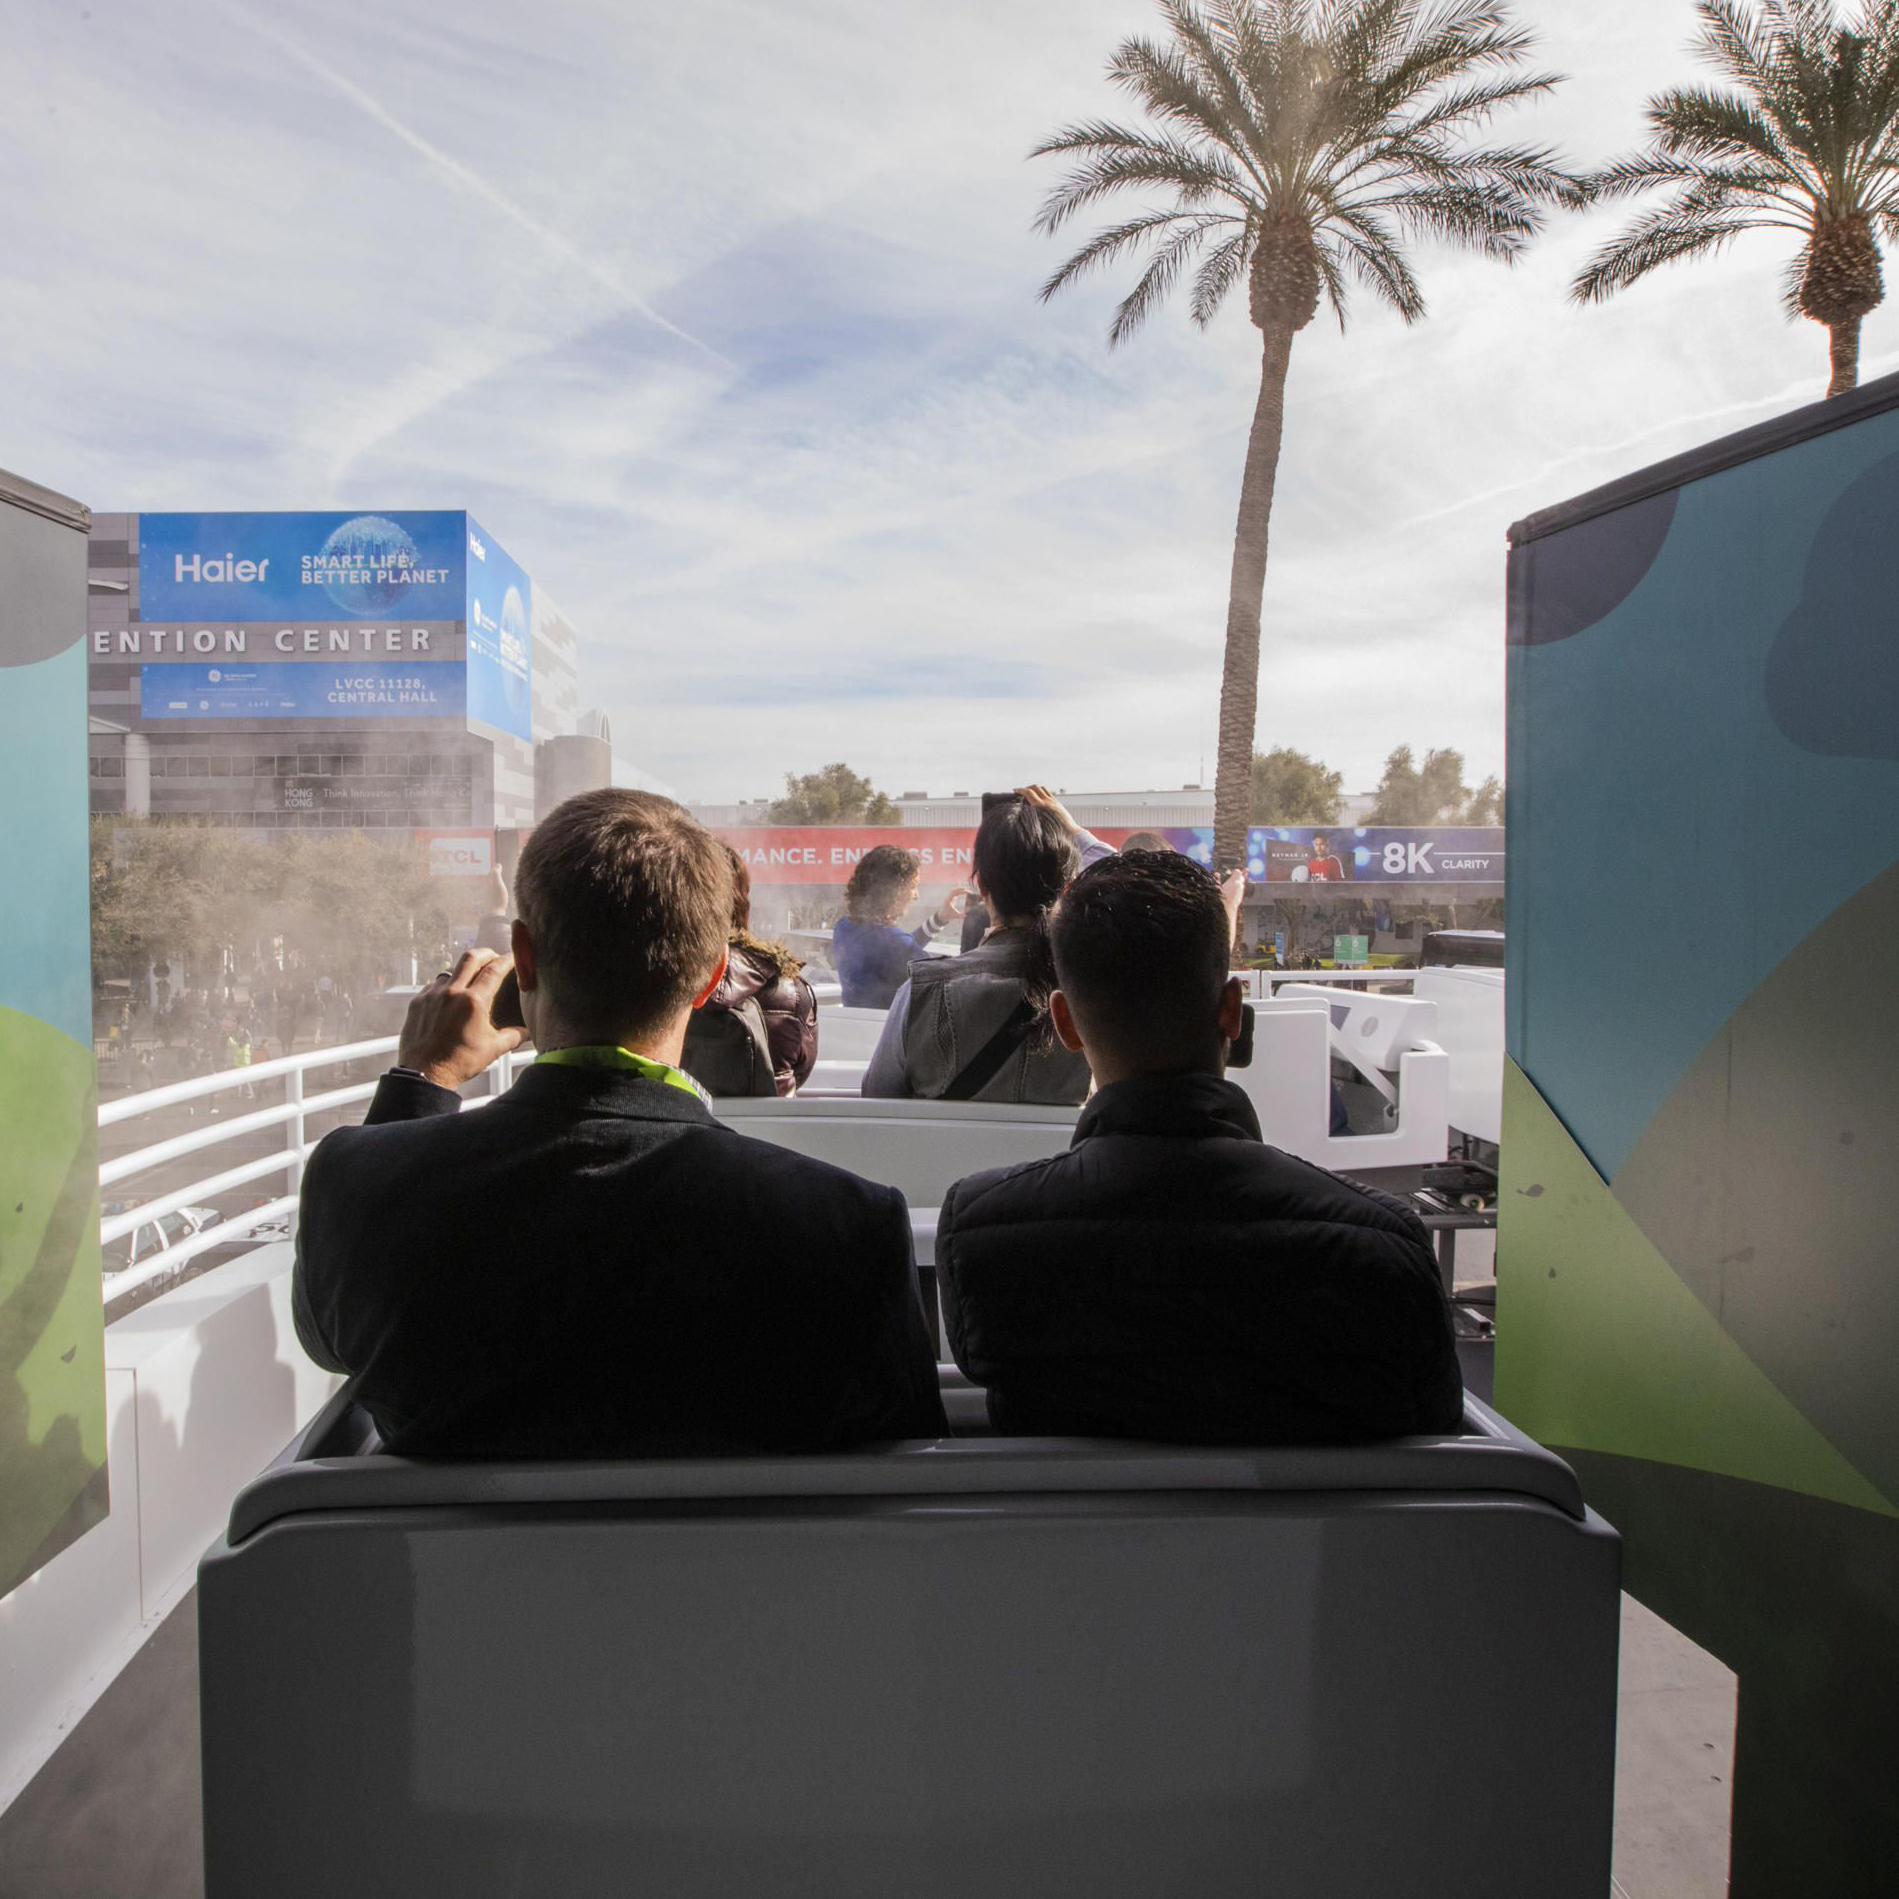 GOOGLE ATCES 2019 - The Ride of your life (literally) and more with the Google Assistant at CES 2019.